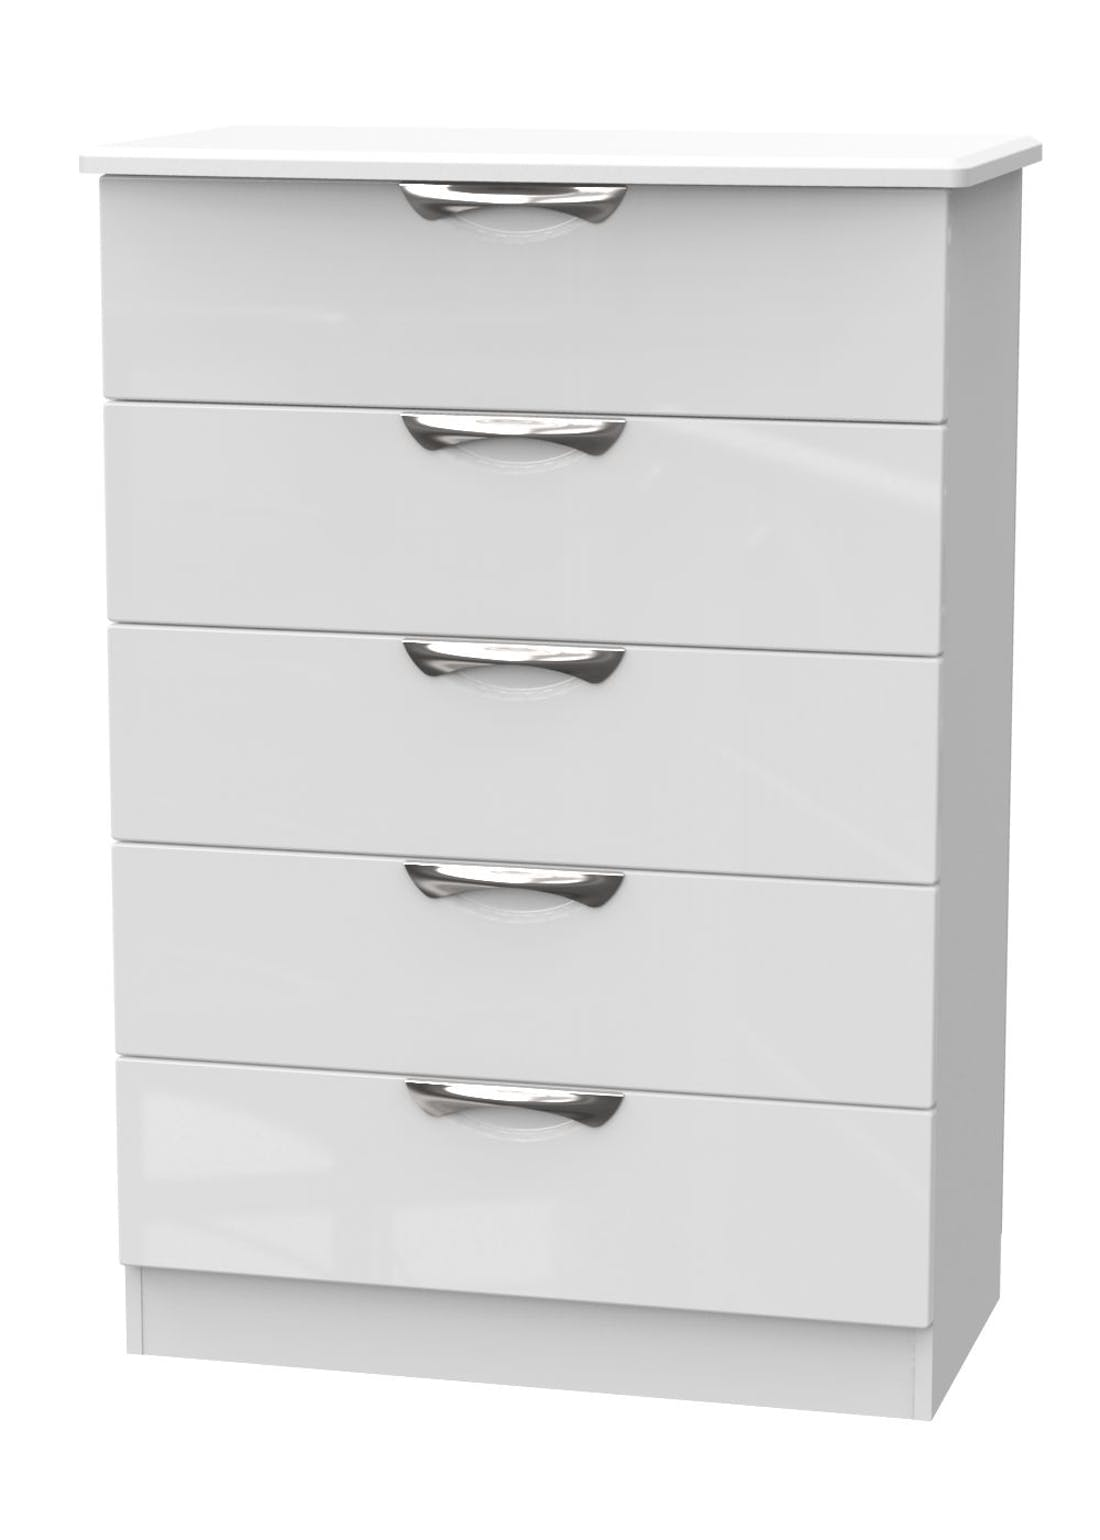 Swift Bordeaux 5 Drawer Chest (107.5cm x 76.5cm x 41.5cm)